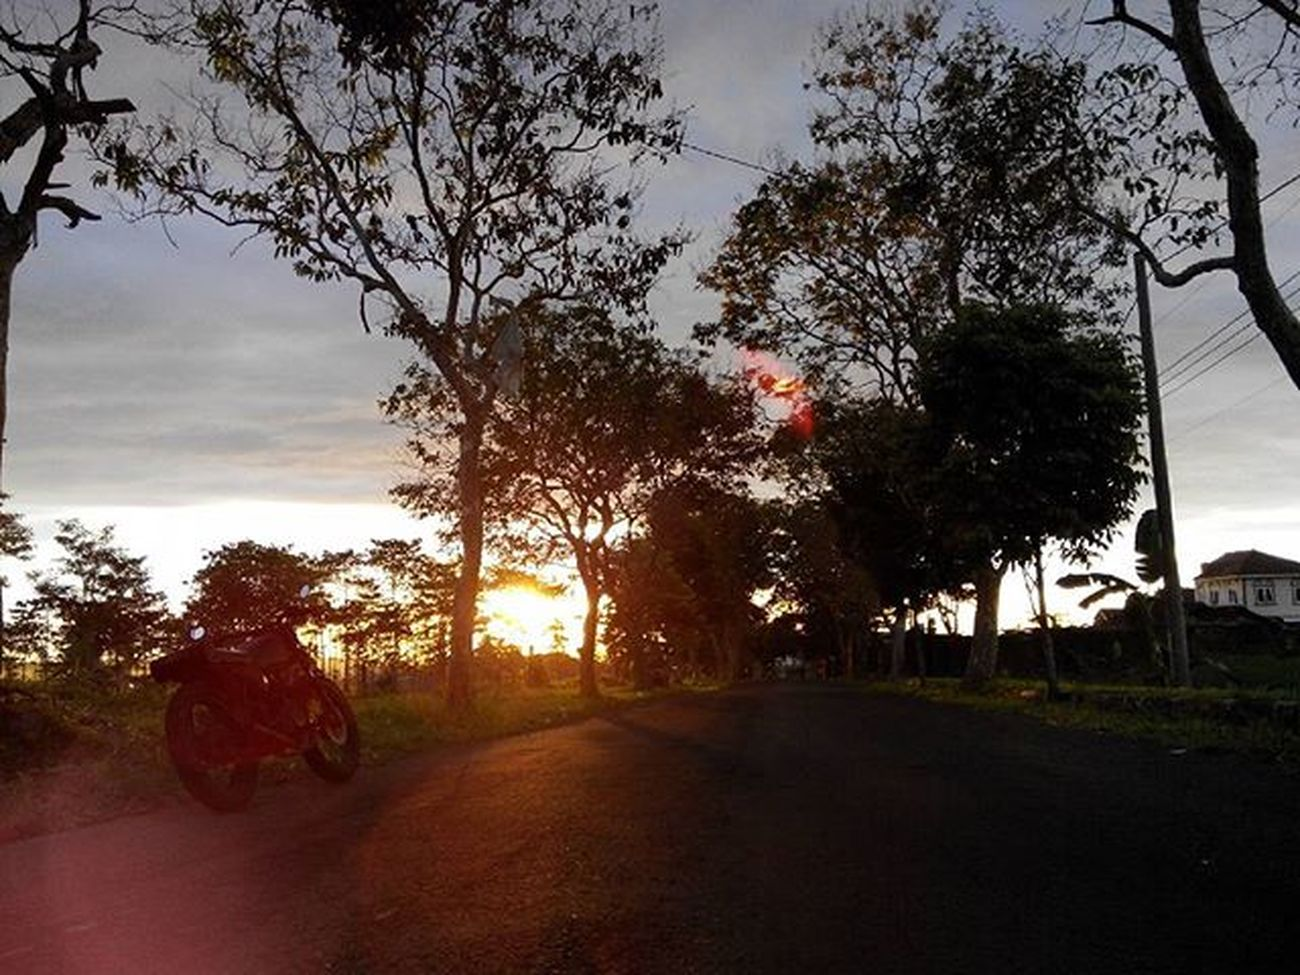 selamat Pagi dari Linggarjati Monumenpersaudaraan Kuninganjabar Cirebon  bersama Besitua CB100 Lenovotography Pocketphotography Photooftheday Nature Sunrise Lzybstrd Photostory Classicbike Onroad